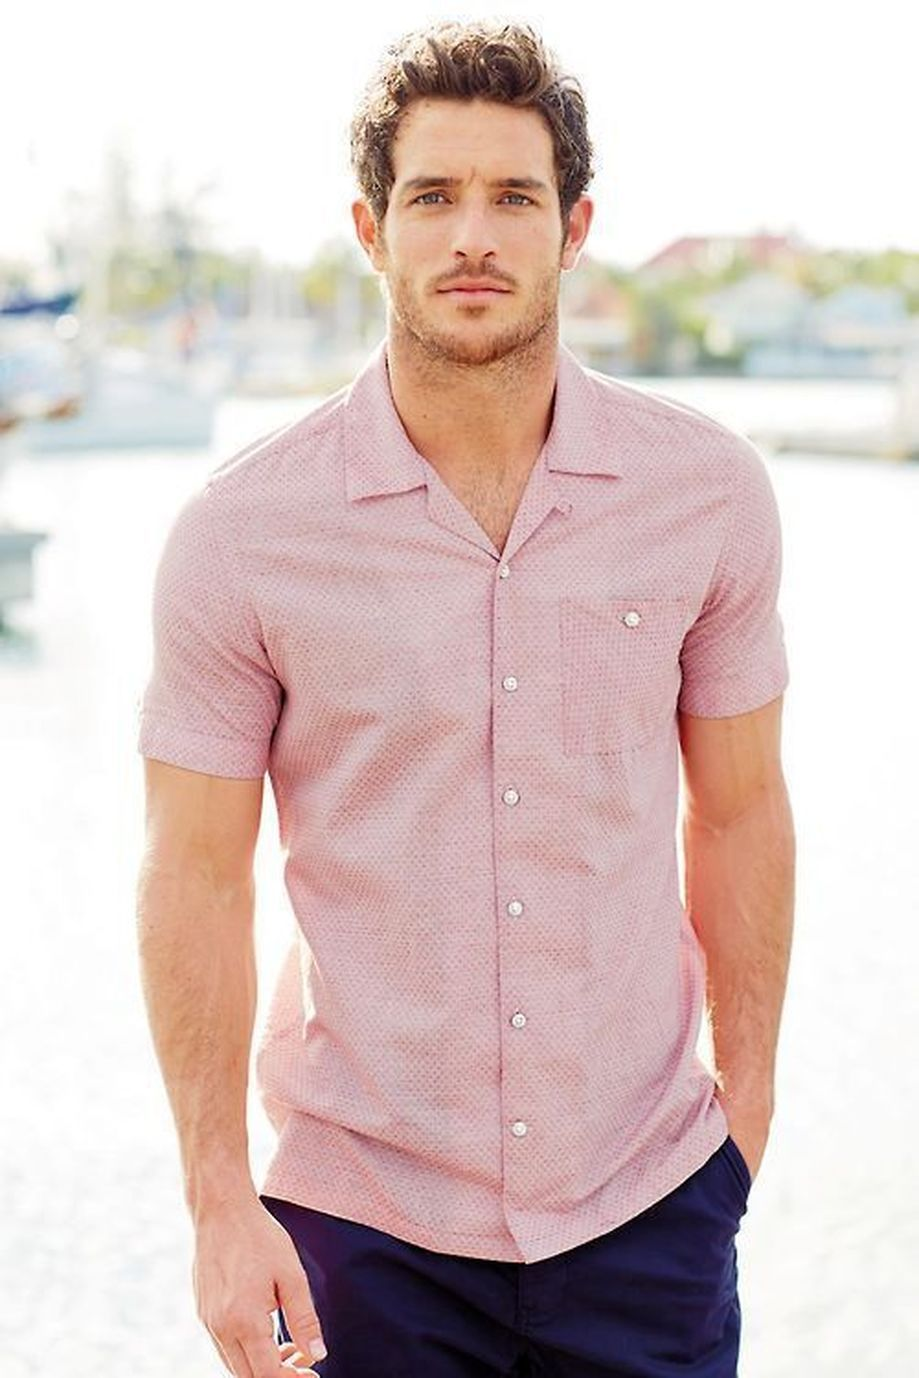 Cool Casual Men's Fashions Summer Outfits Ideas 18